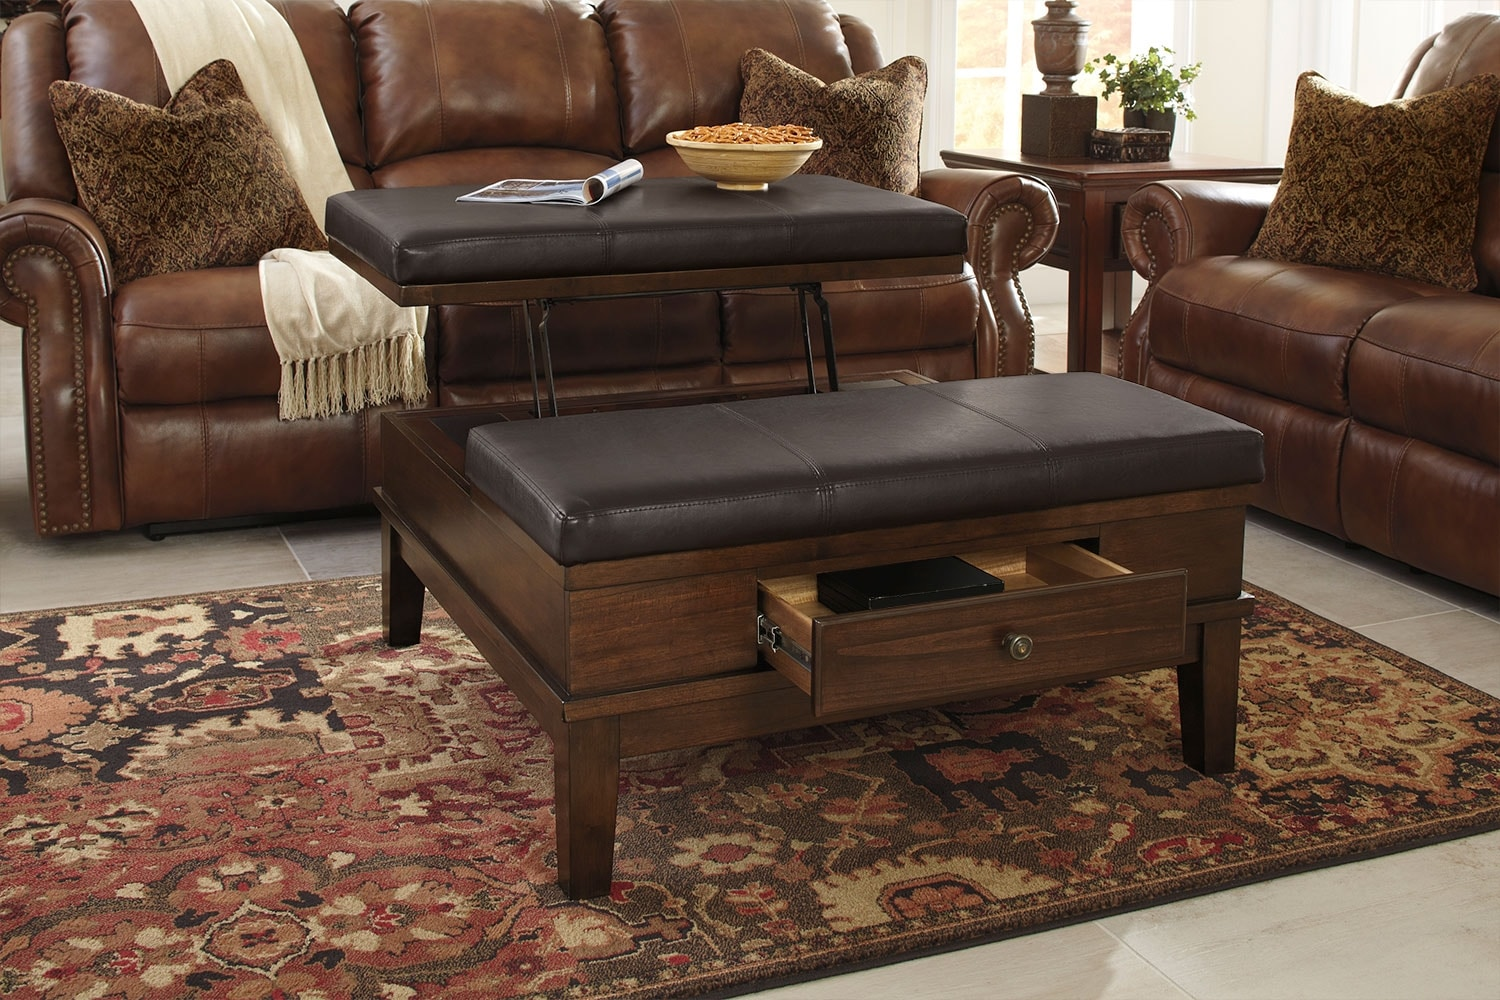 Gately Ottoman Coffee Table with Lift-Top | The Brick